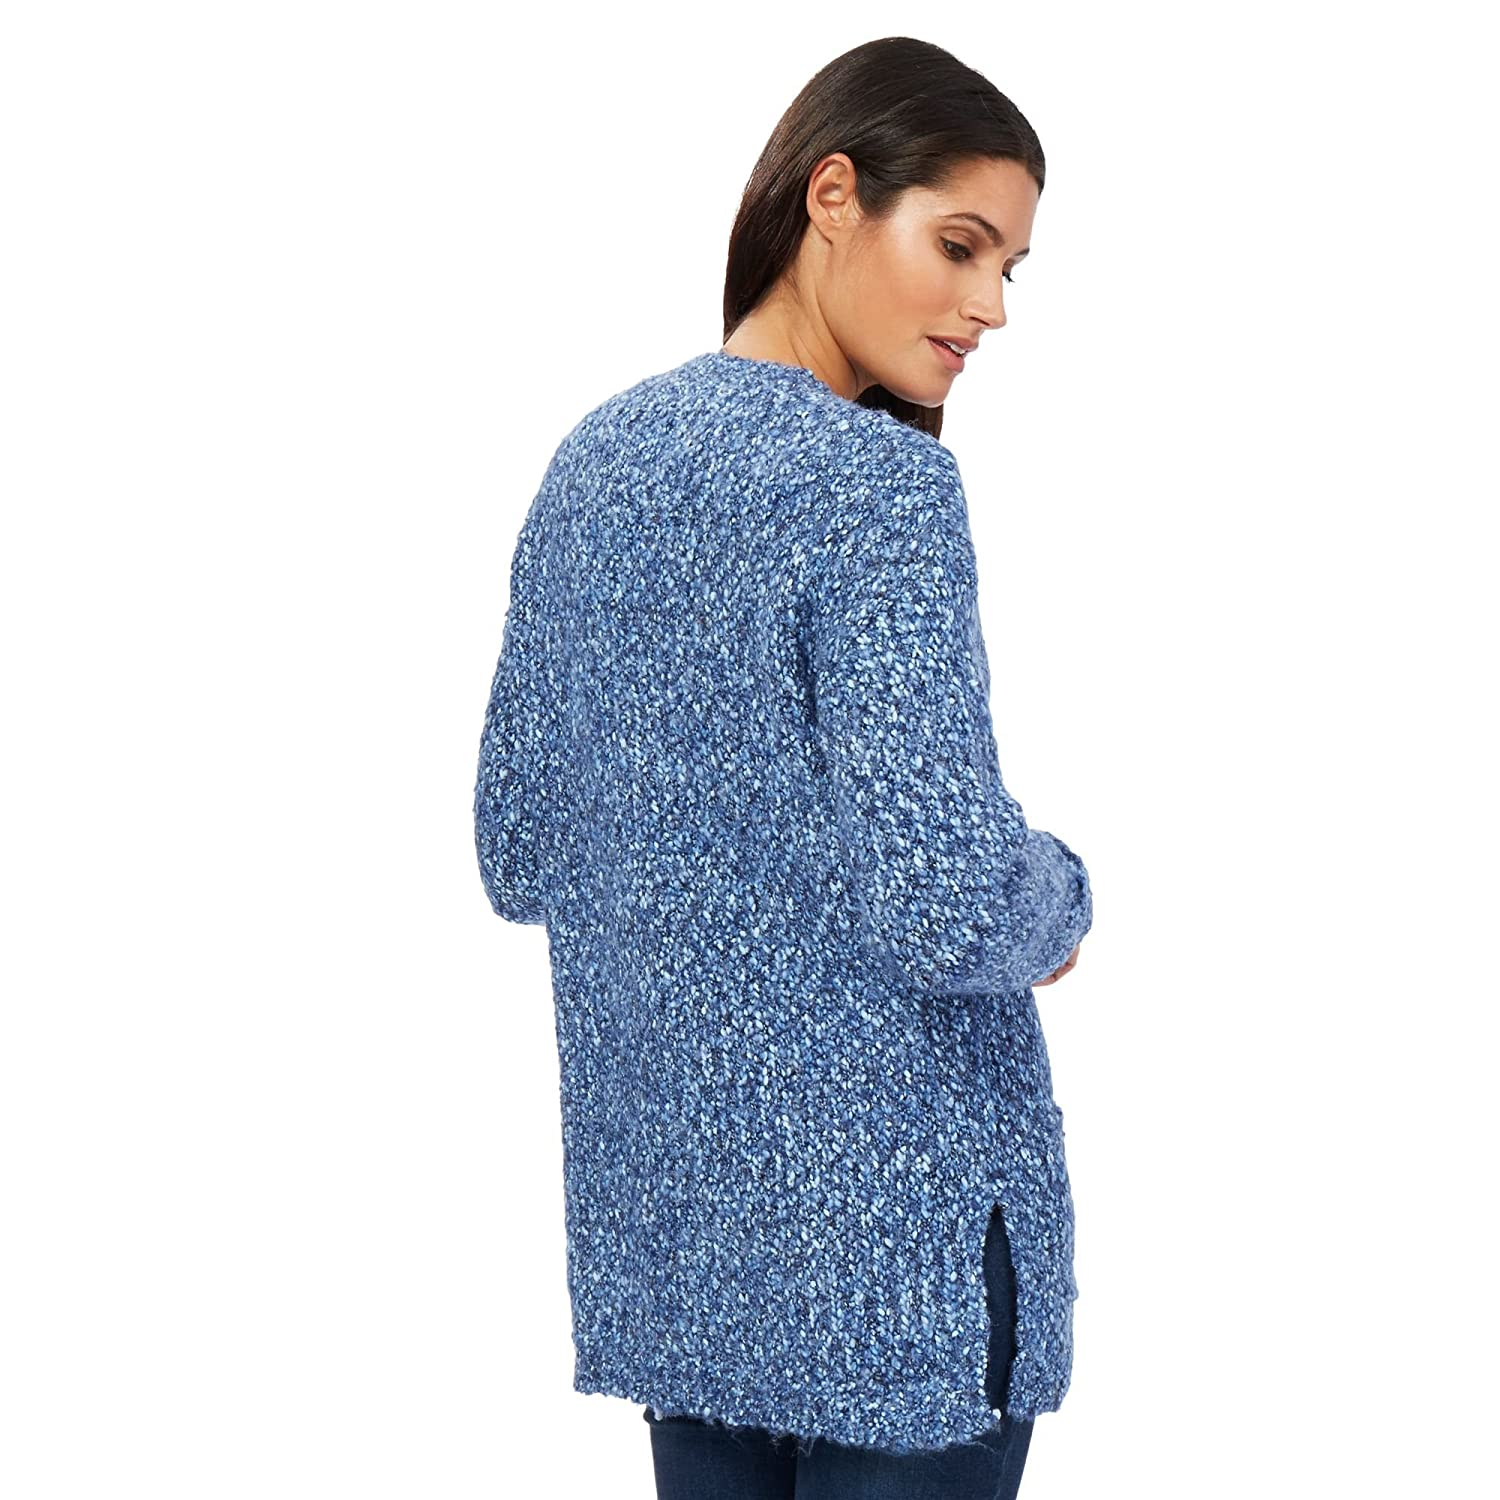 Debenhams Mantaray Womens Blue Textured Boucle Cardigan From 10 ...